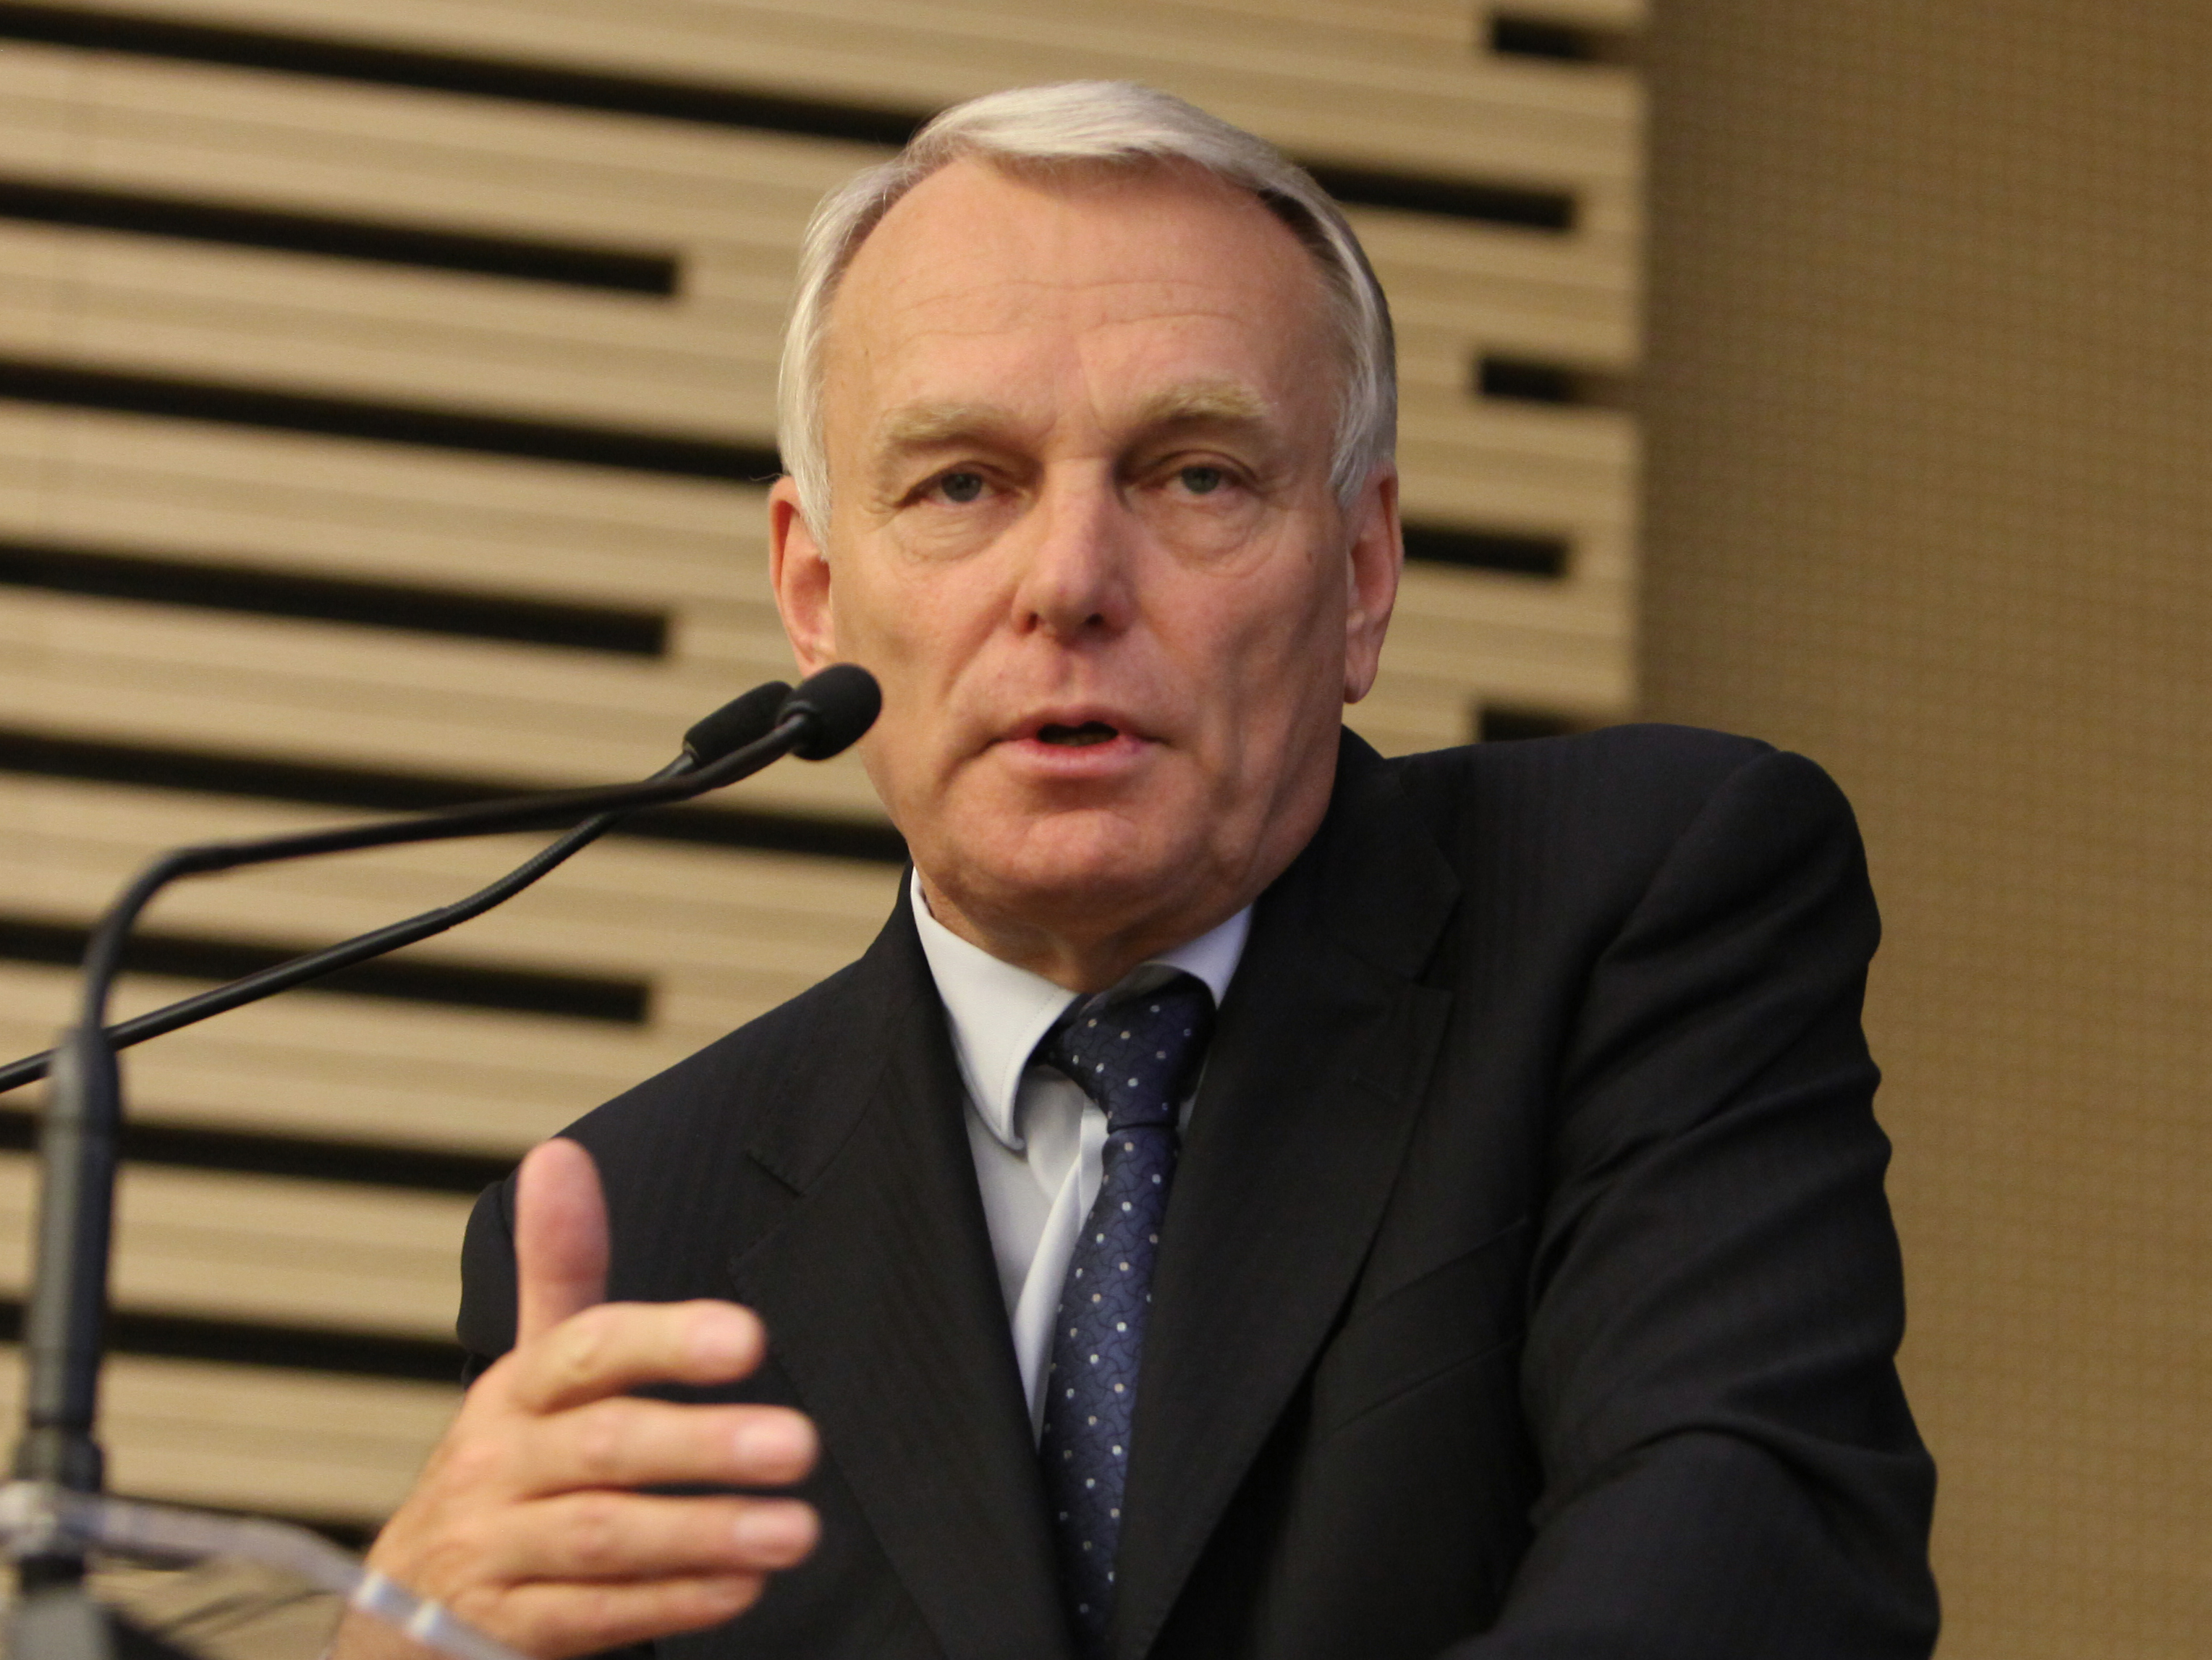 Jean-Marc Ayrault's quote #3